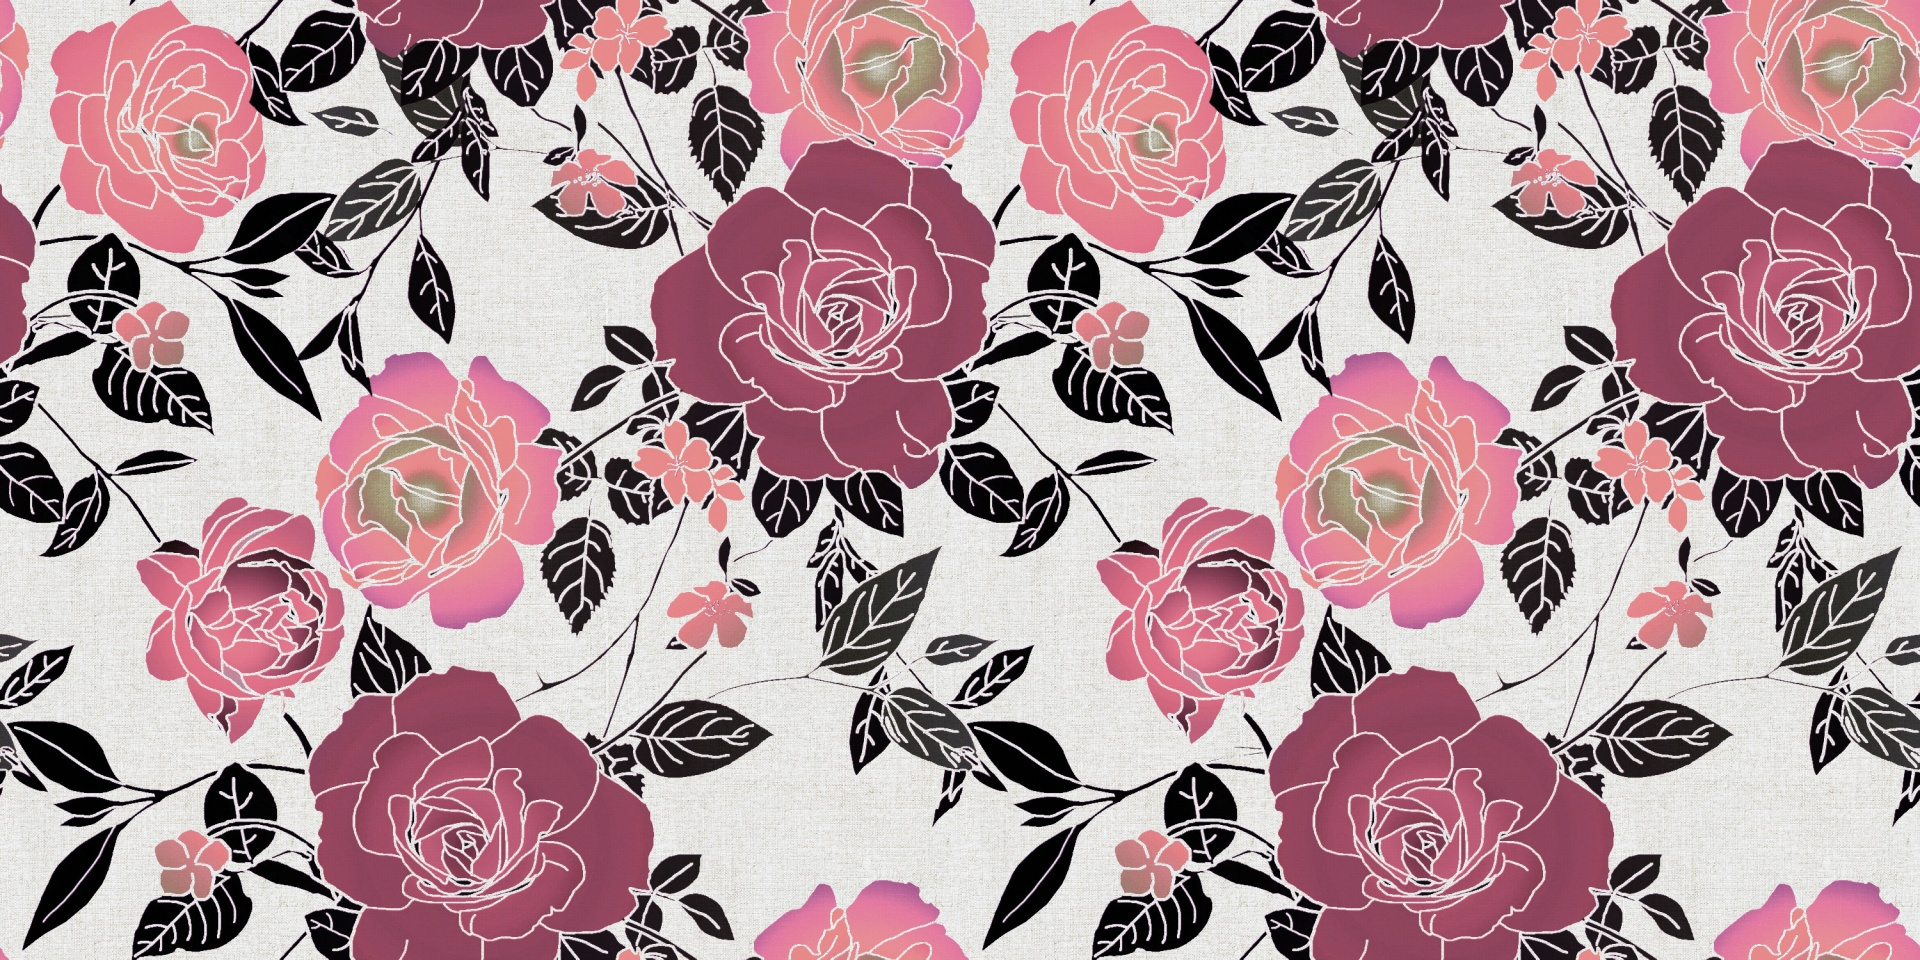 Floral Pattern Design Art Background Free Image From Needpix Com